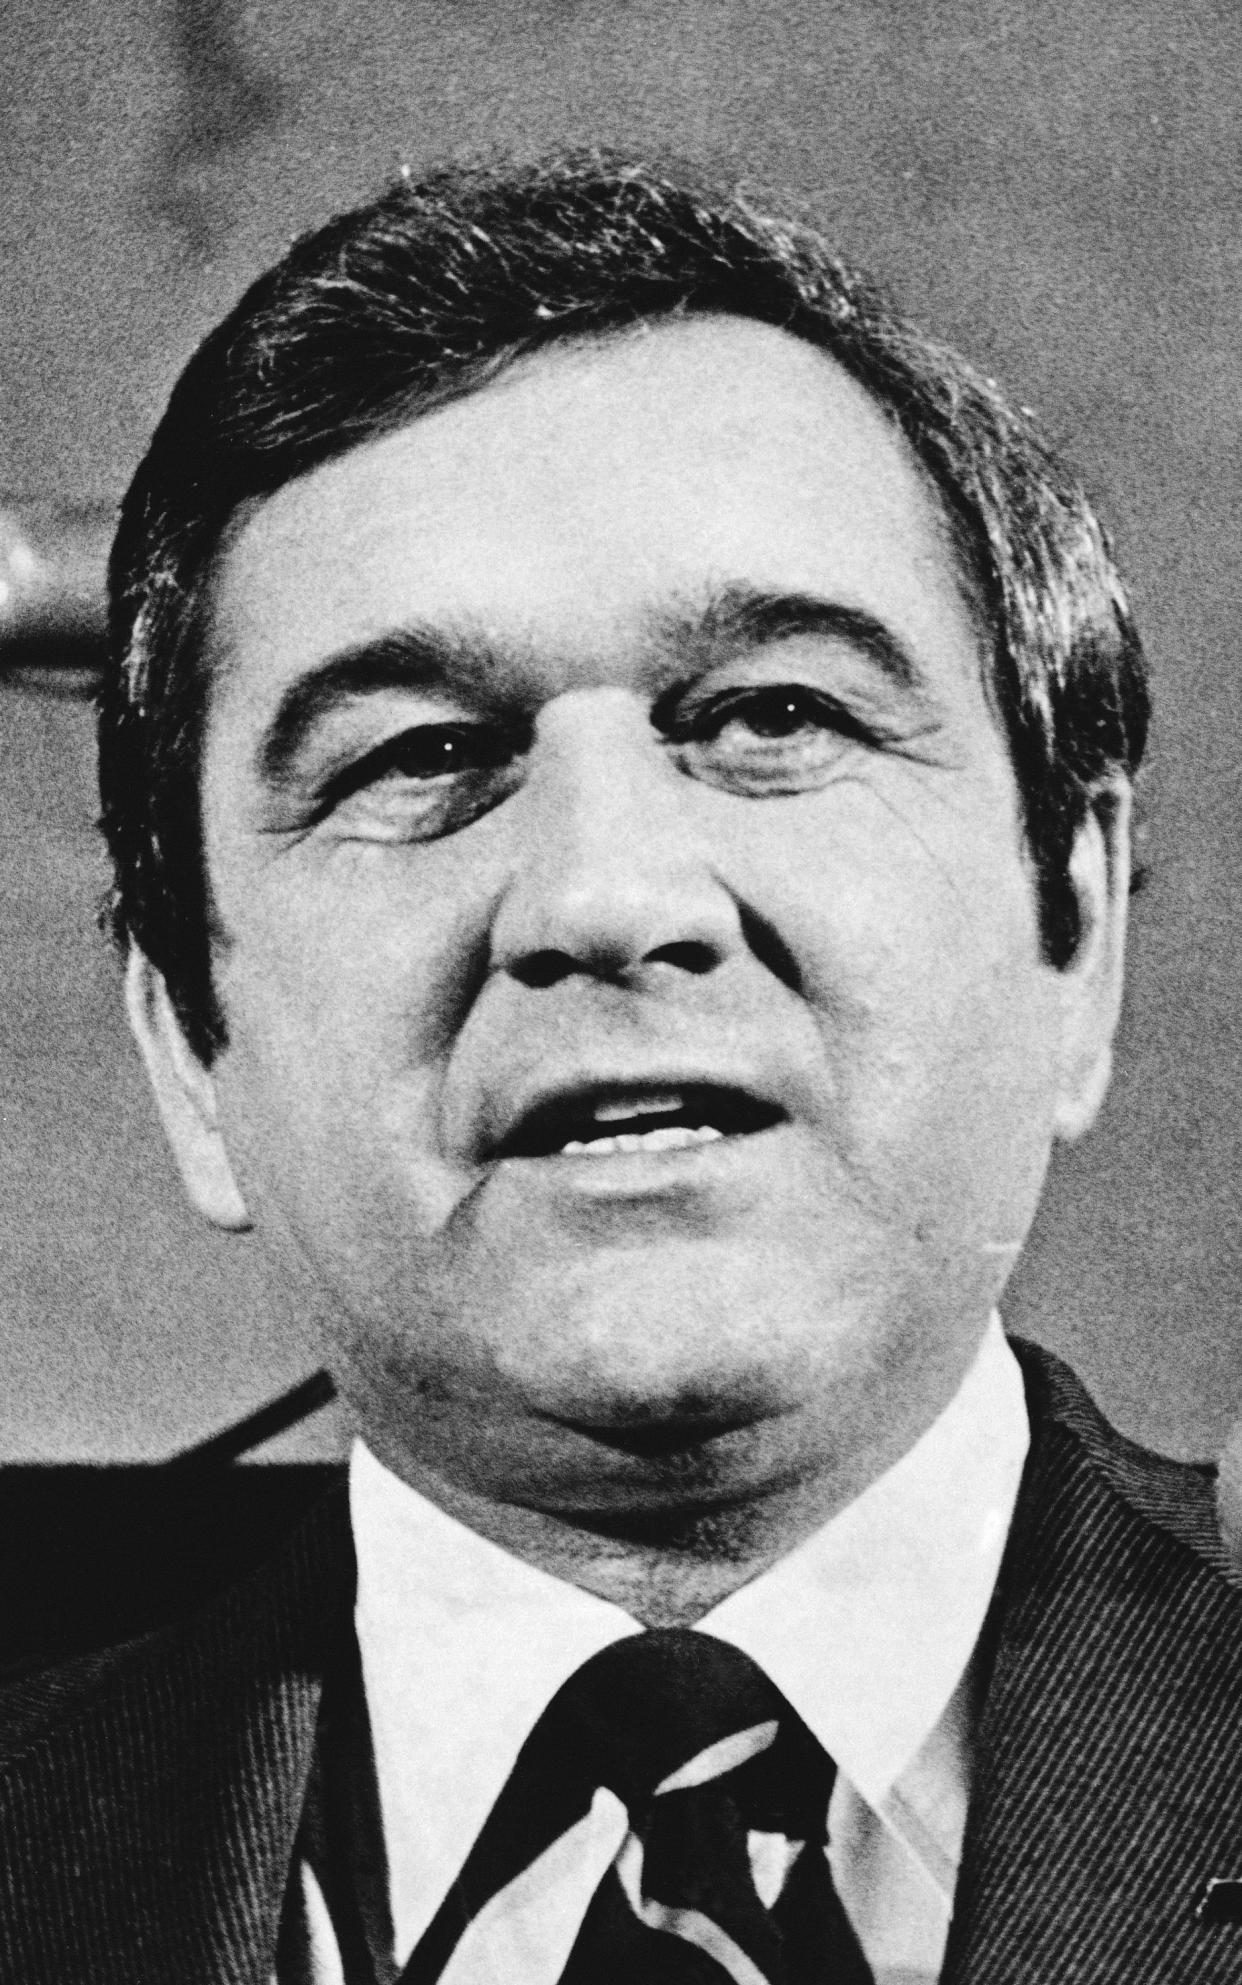 FILE - In this Jan. 11, 1979, file photo, Tennessee Gov. Ray Blanton appears before a joint session to give his final State of the State message in Nashville before leaving office on Jan. 20. Law enforcement officials announced Wednesday, June 9, 20201, the closing a 42-year-old cold case of Samuel Pettyjohn, a Chattanooga businessman who was shot and killed in 1979 in a contract killing that former Gov. Ray Blanton's administration helped pay for. (AP Photo/File)